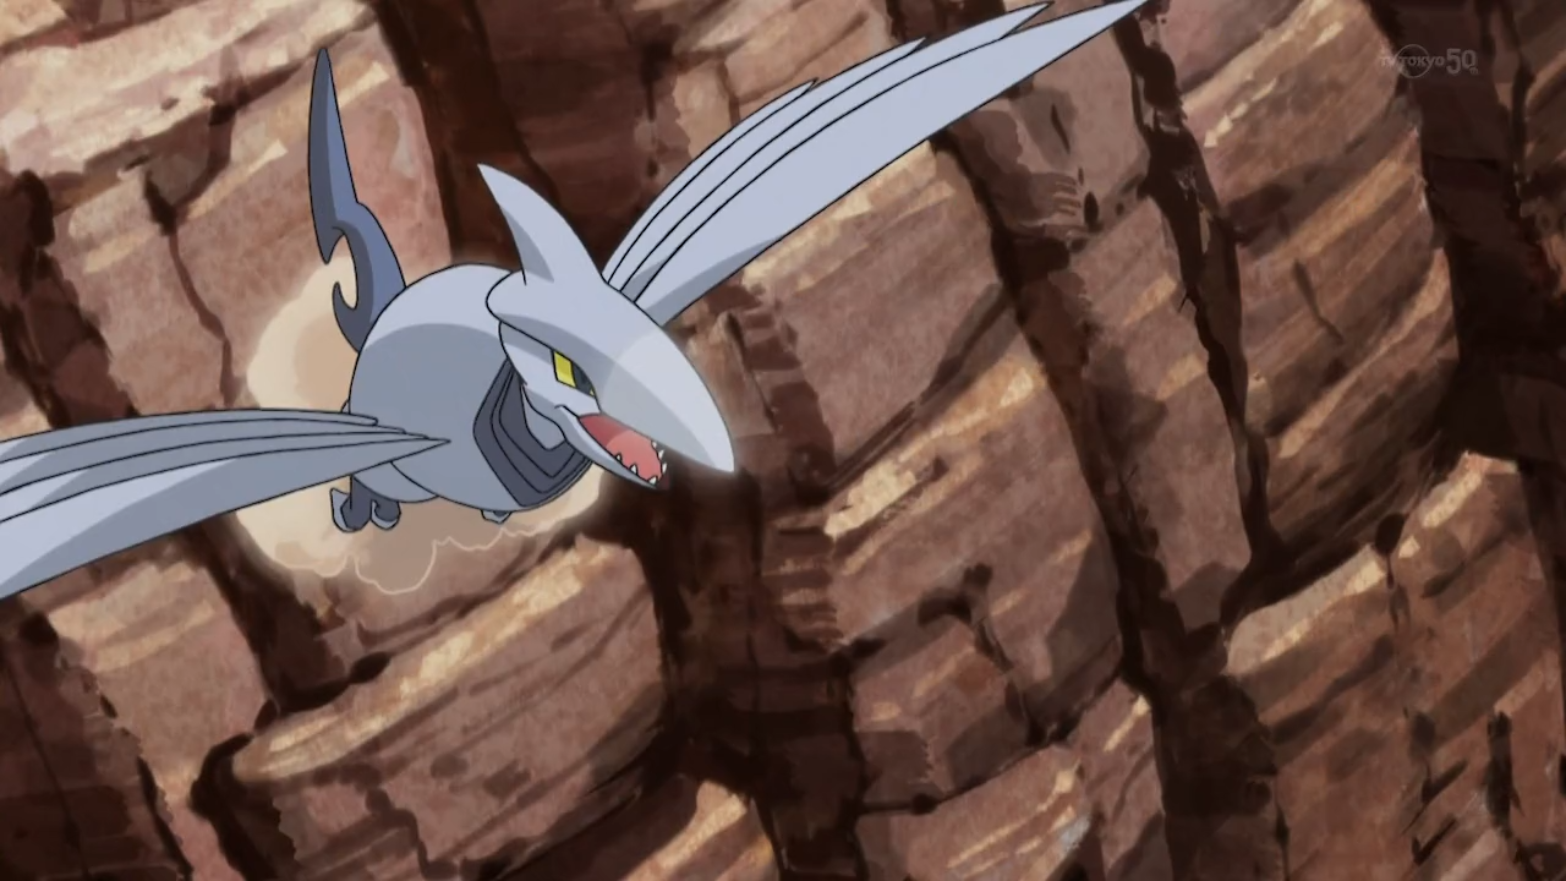 The Sky Trainer used his Skarmory in a sky battle against Moria and her Talonflame. Skarmory used its Fury Attack on Talonflame but the attack was dodged. Skarmory was eventually knocked out by Talonflame with the use of Fire Blast.